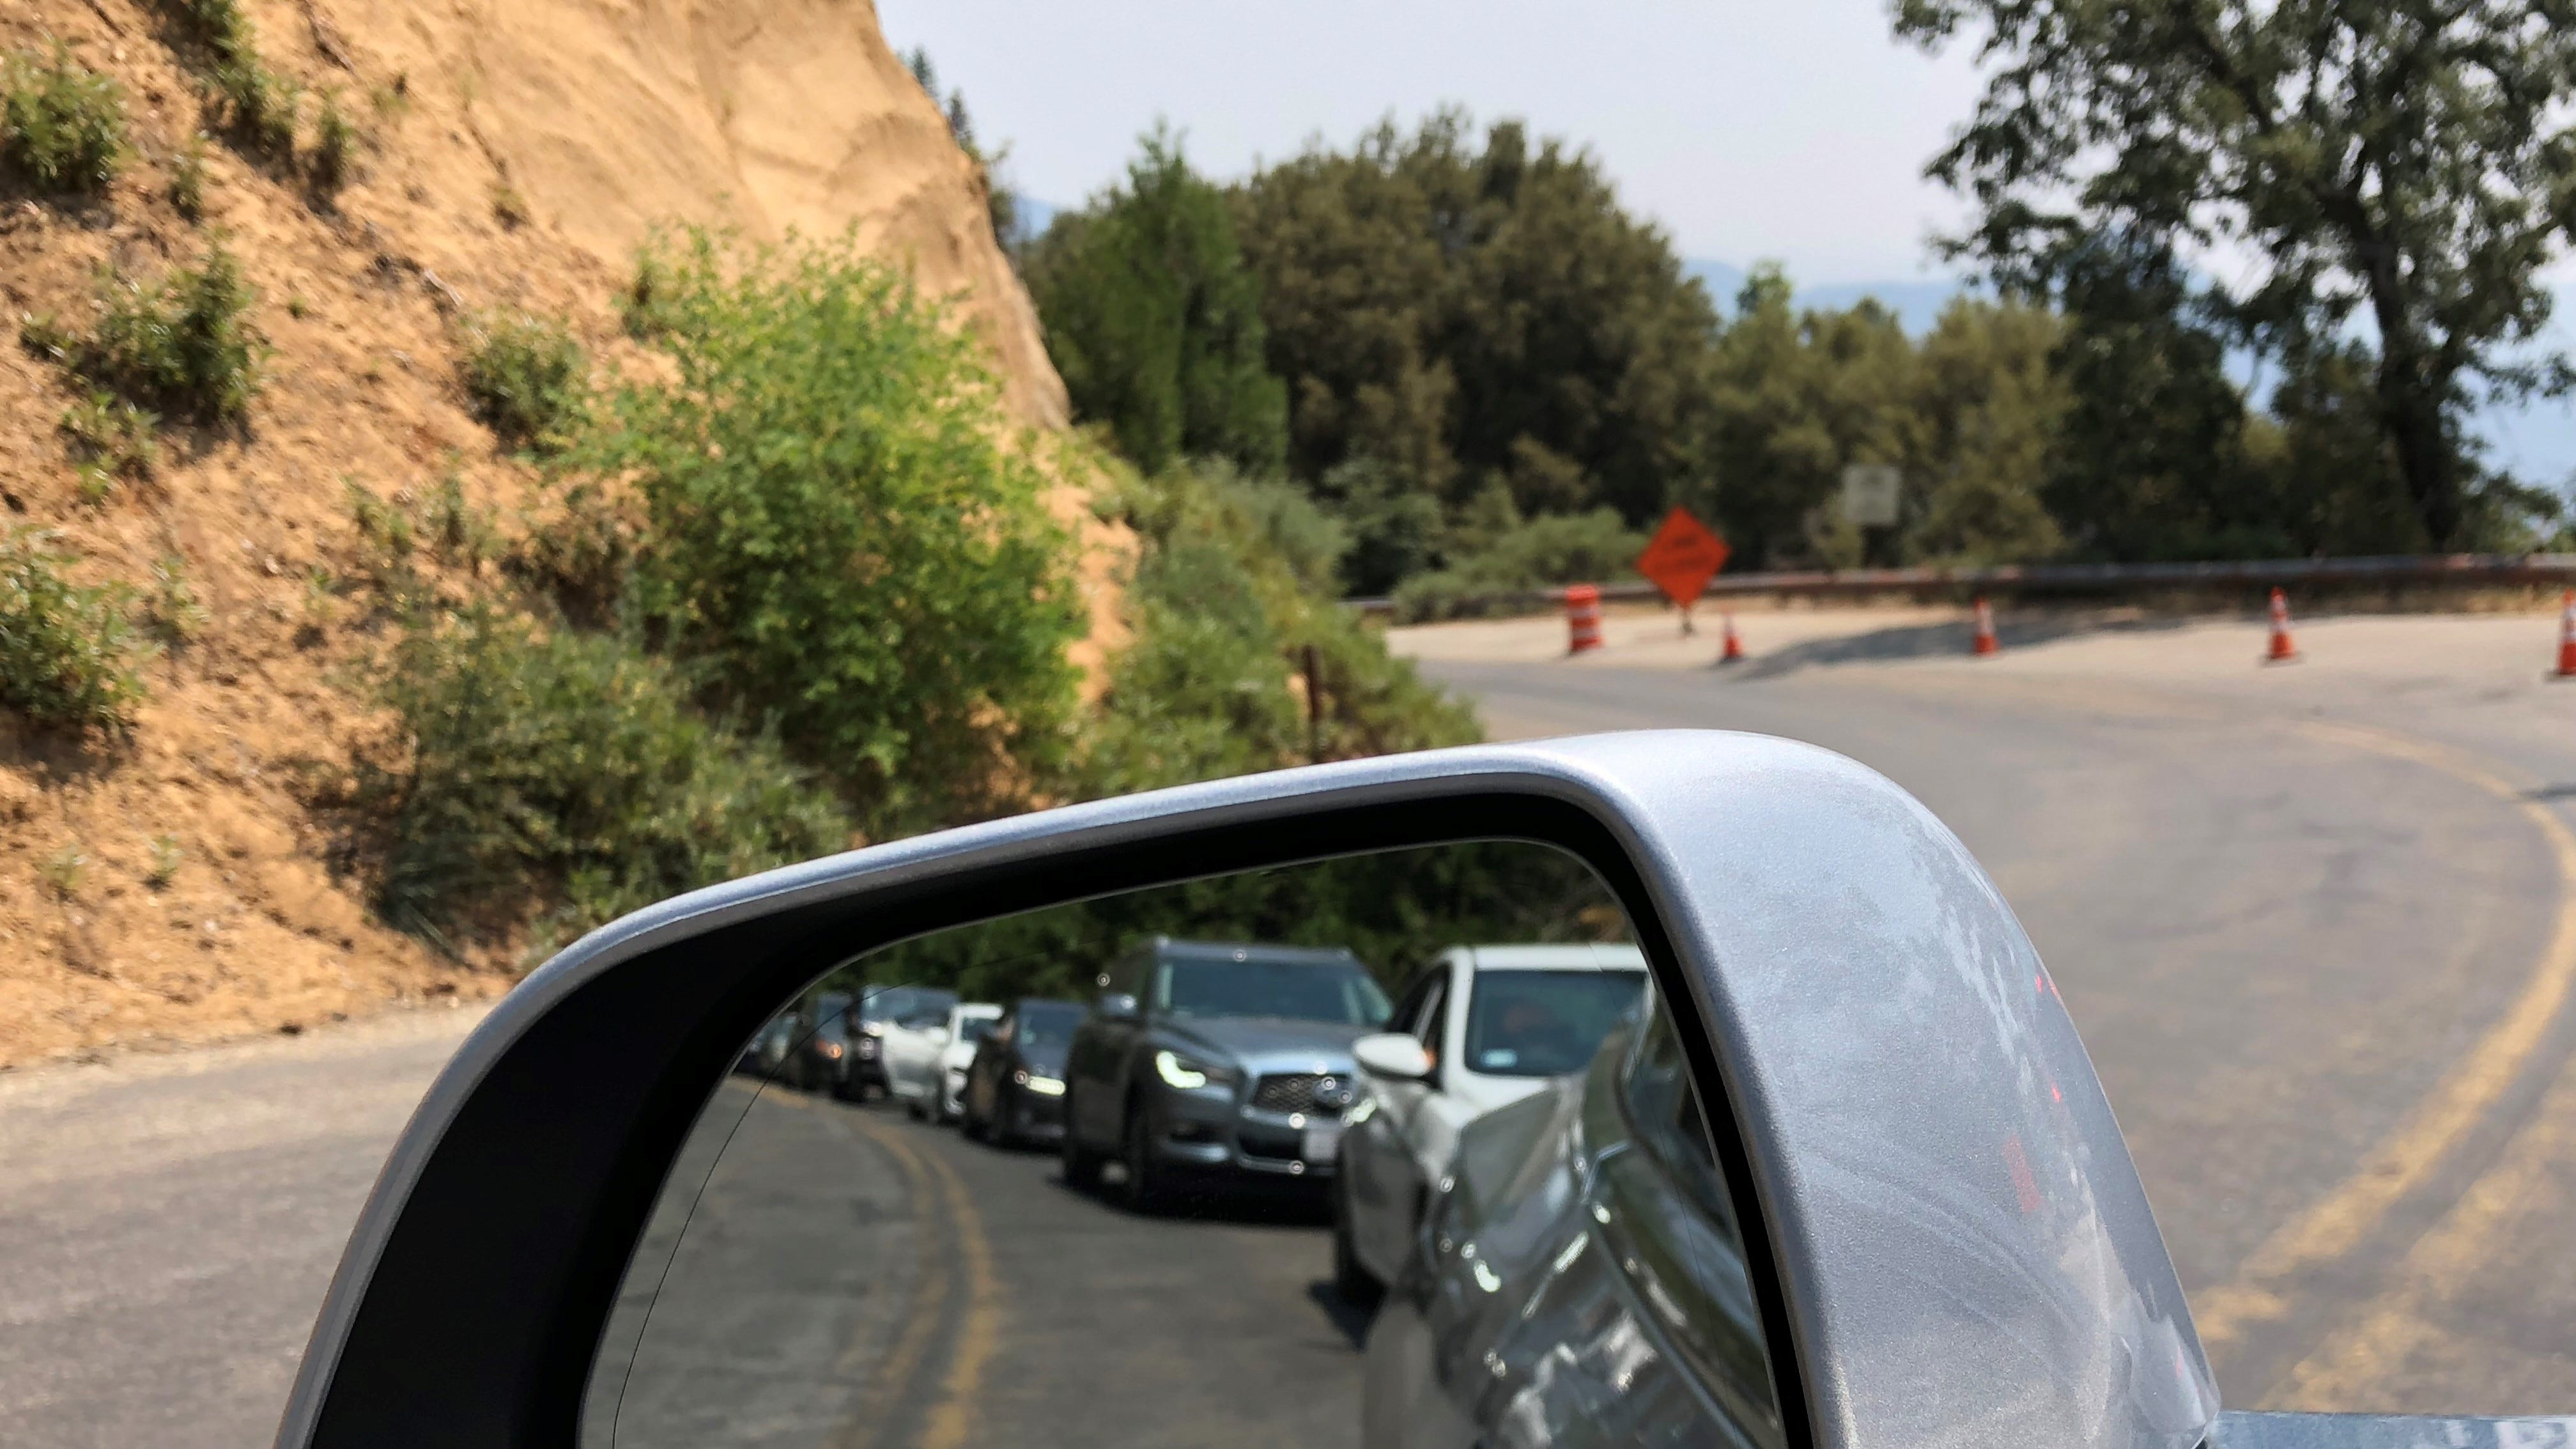 Continued road work worsens traffic delays inside Sequoia National Park